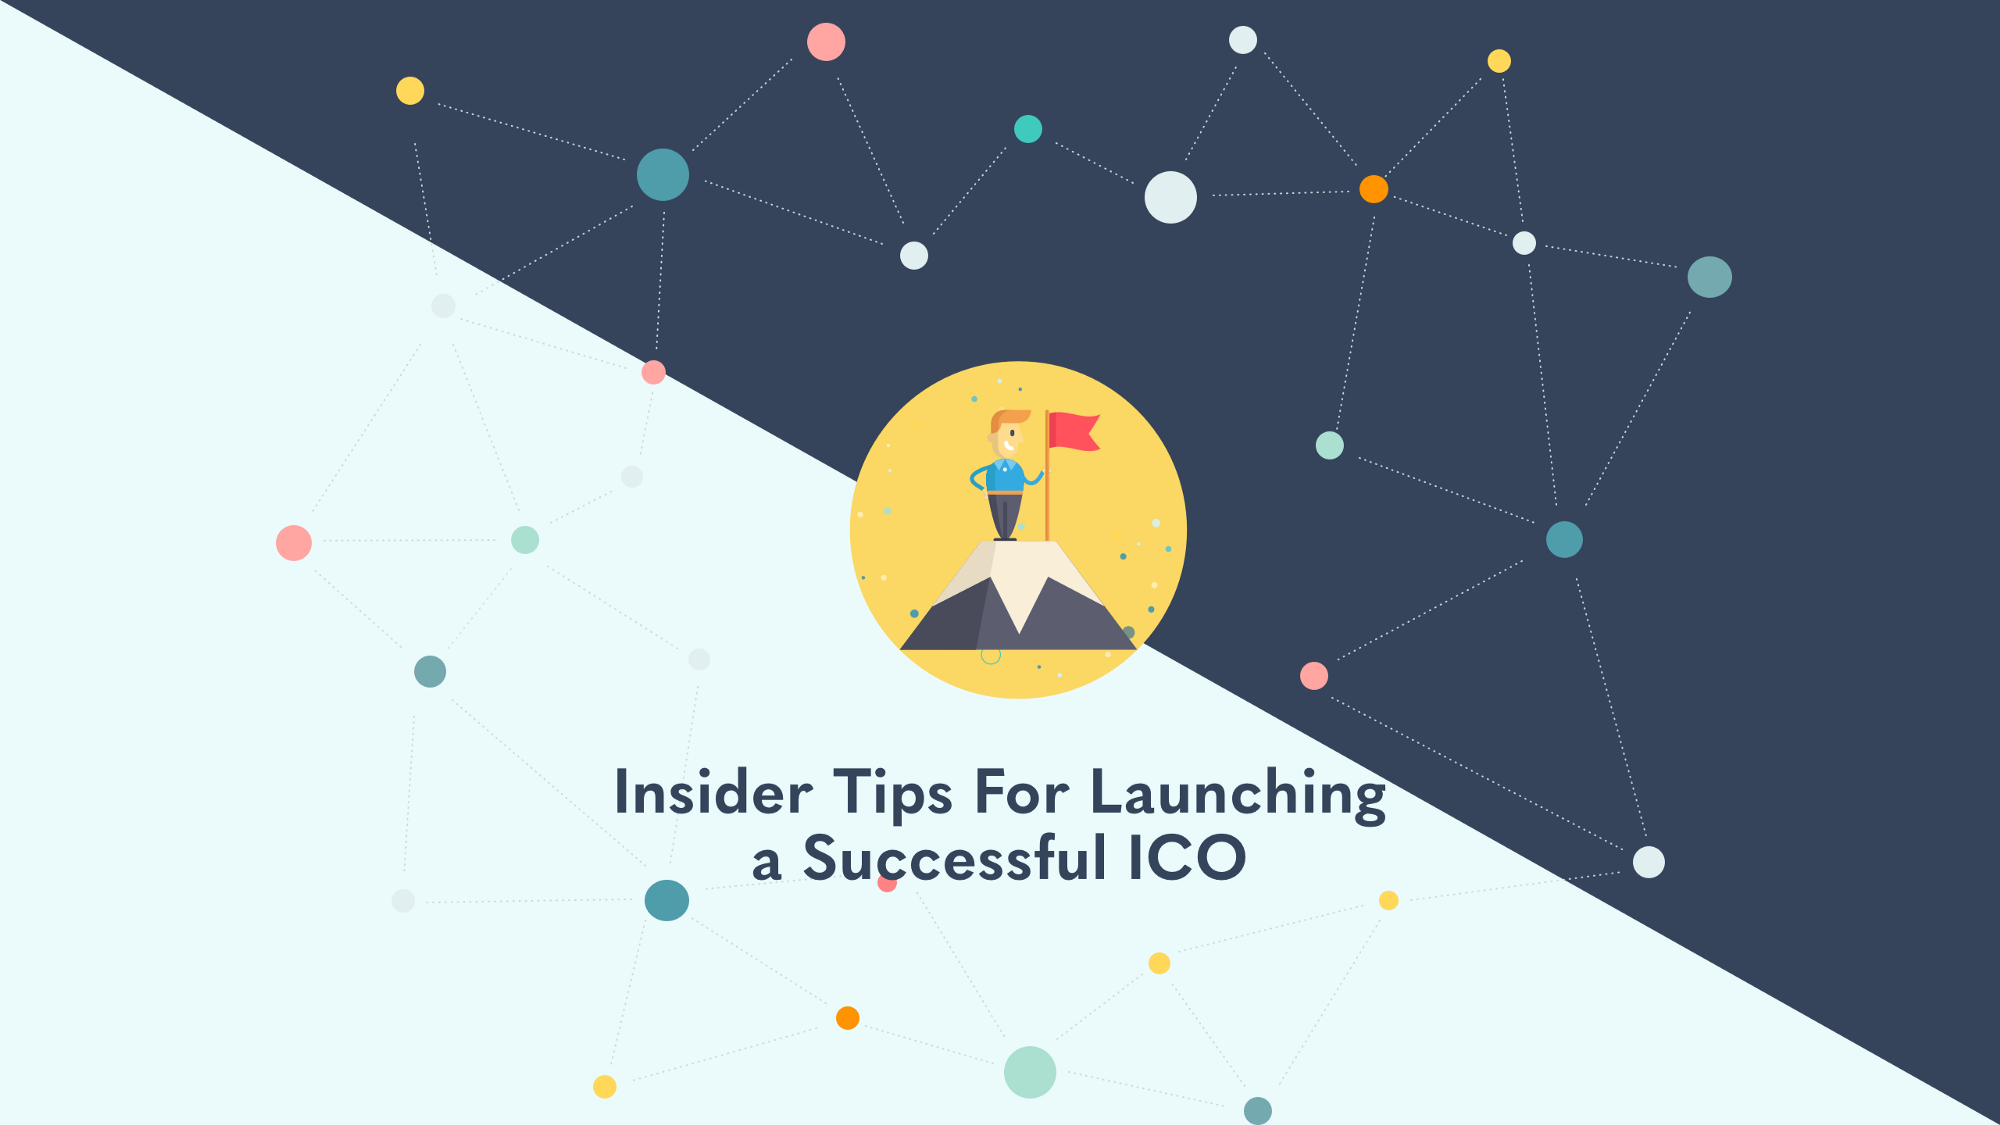 Insider Tips For Launching a Successful ICO